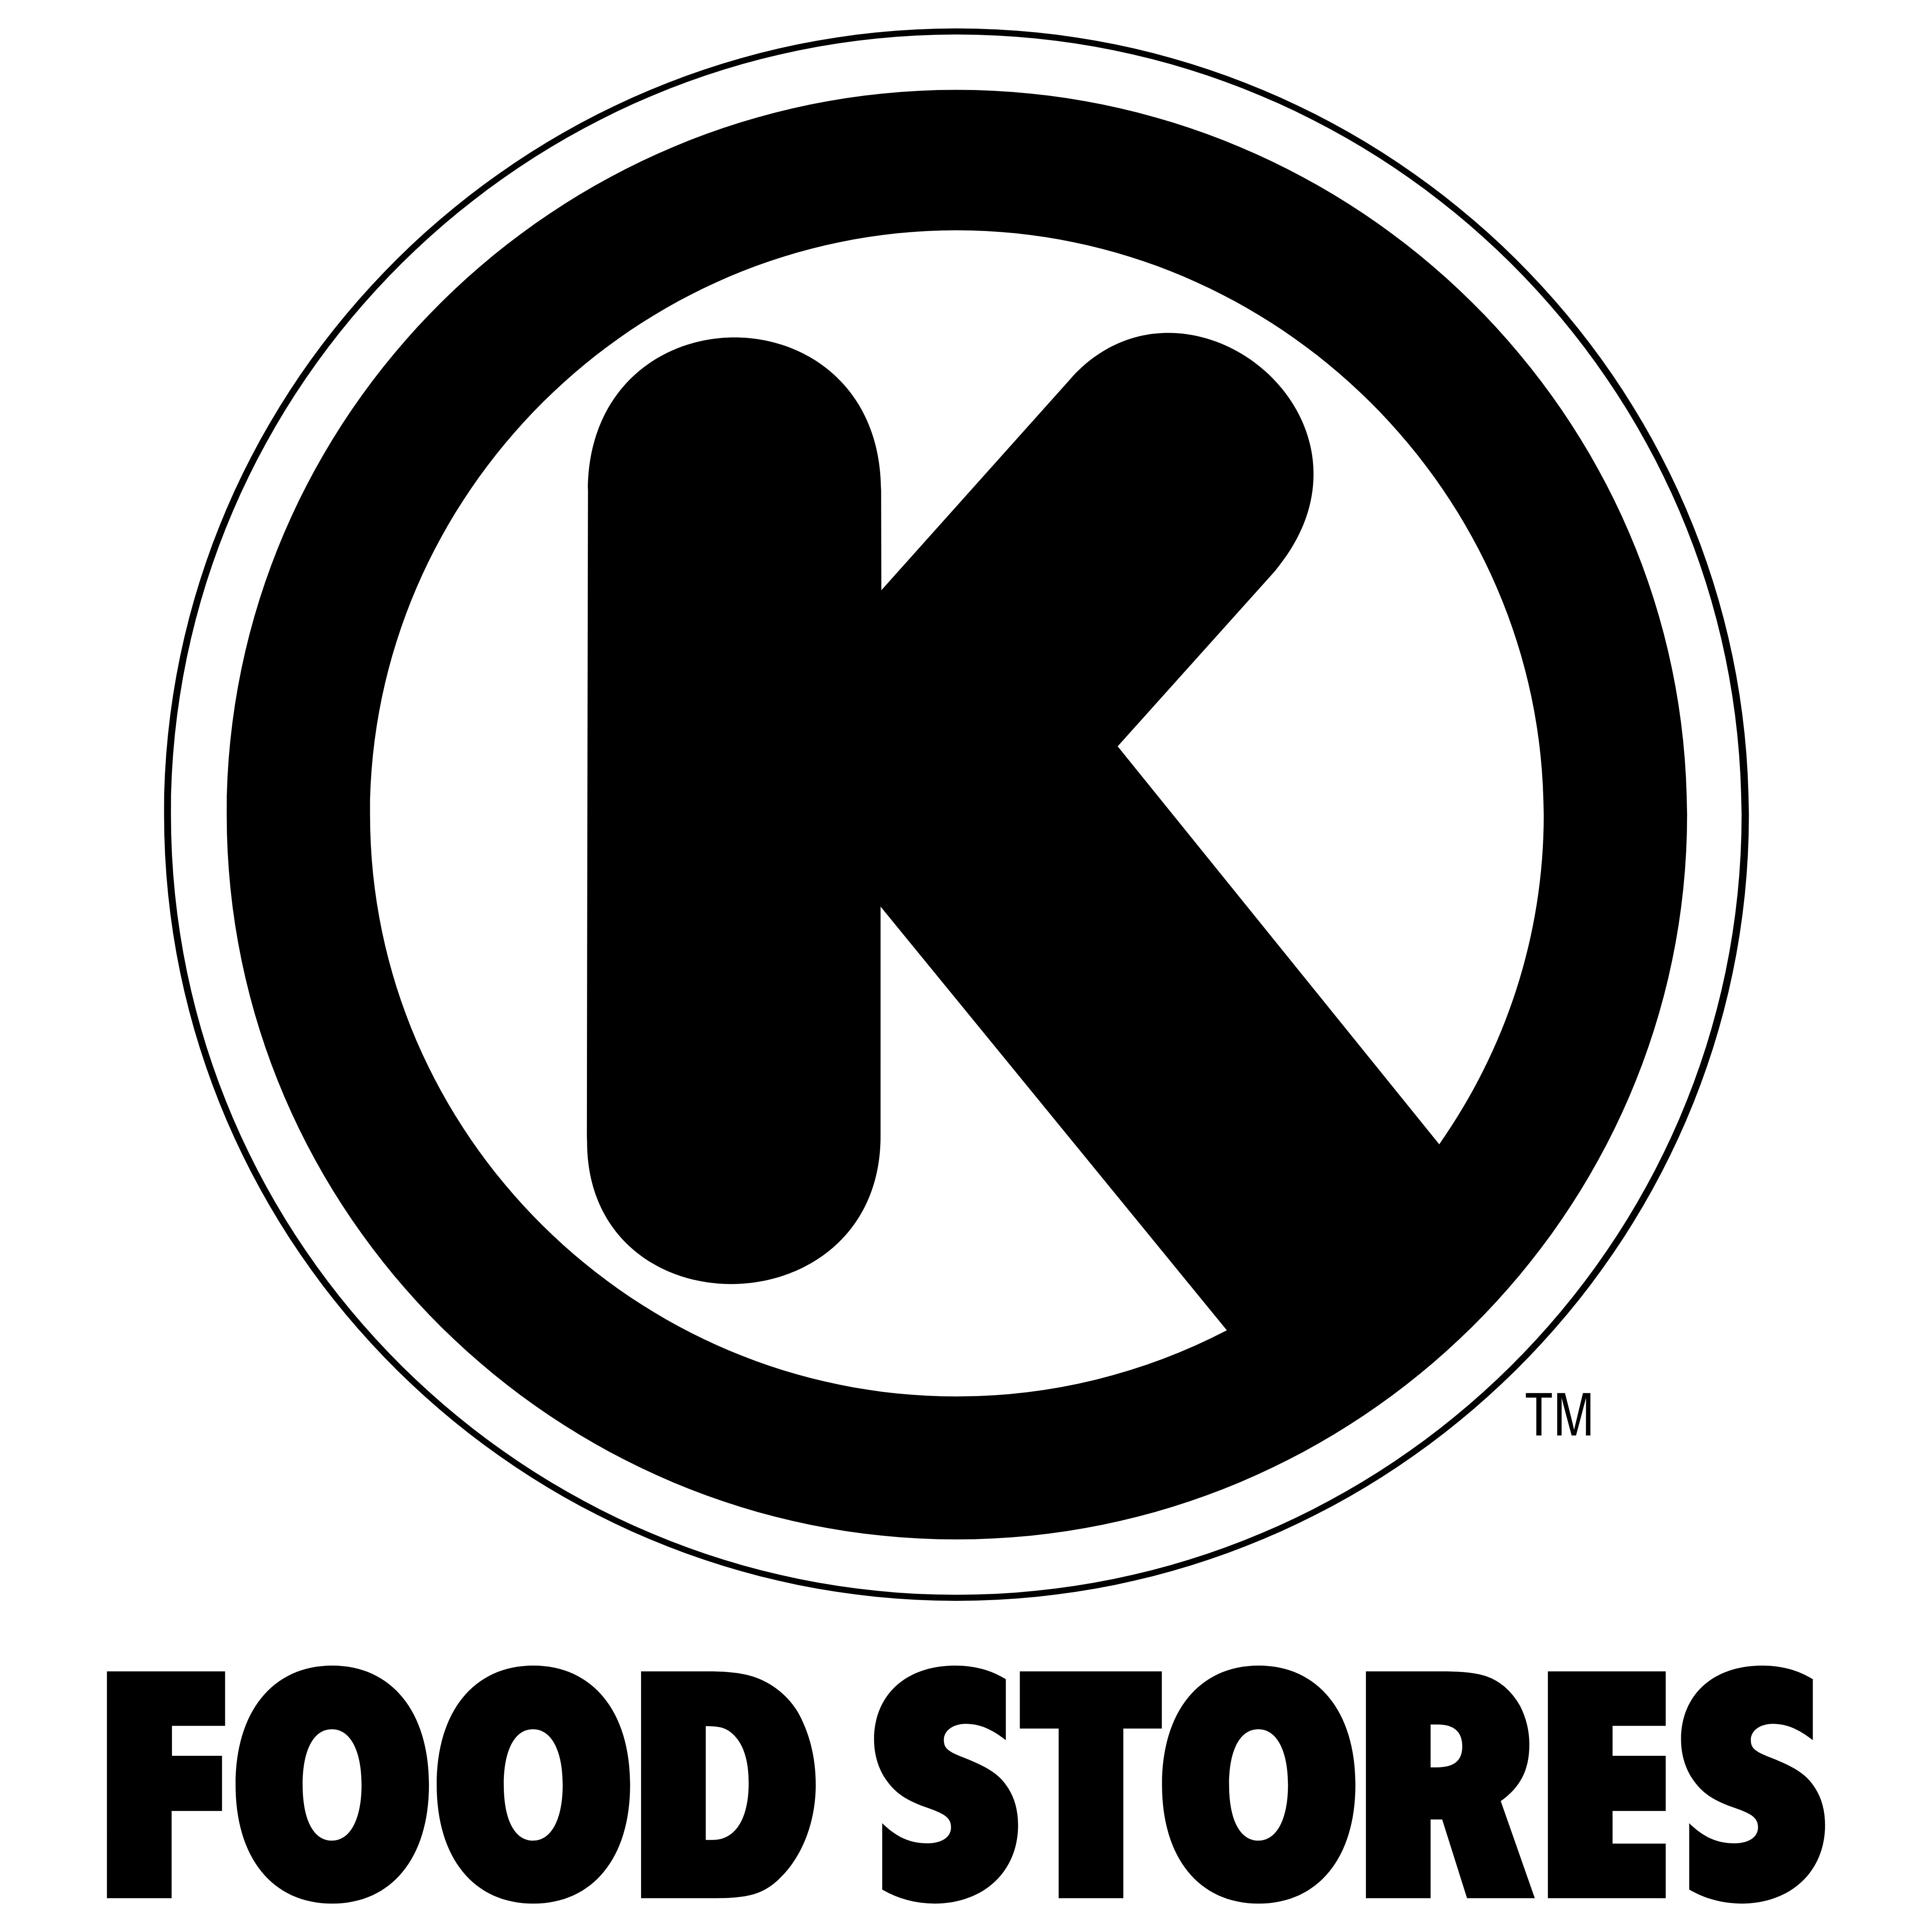 Circle K – Logos Download